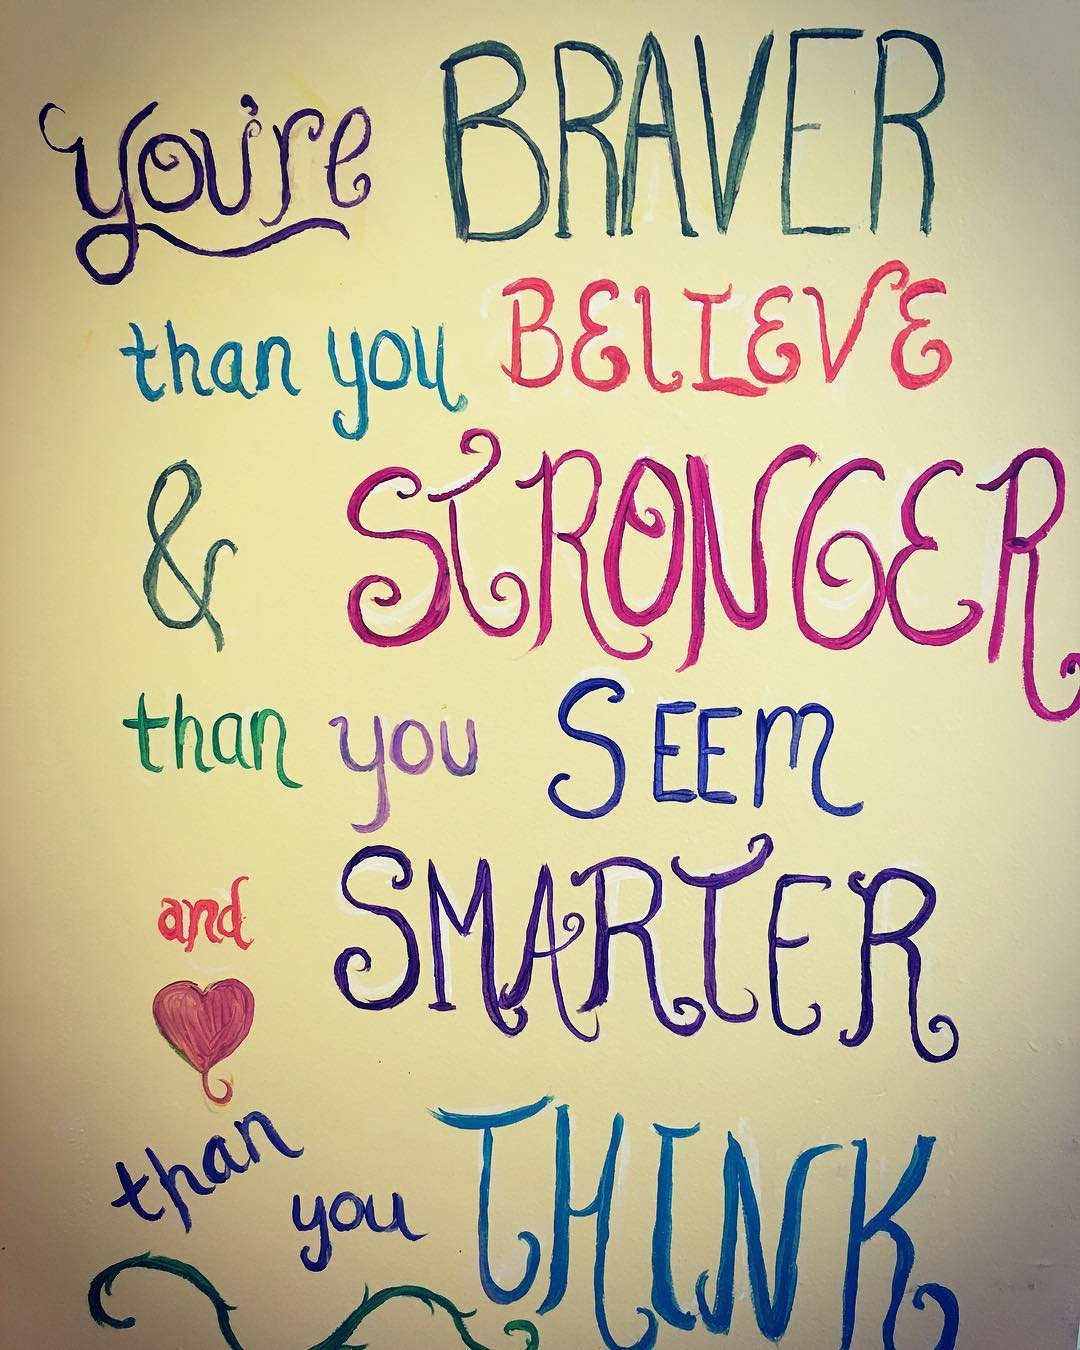 Youre braver than you believe amp stronger than you seemhellip